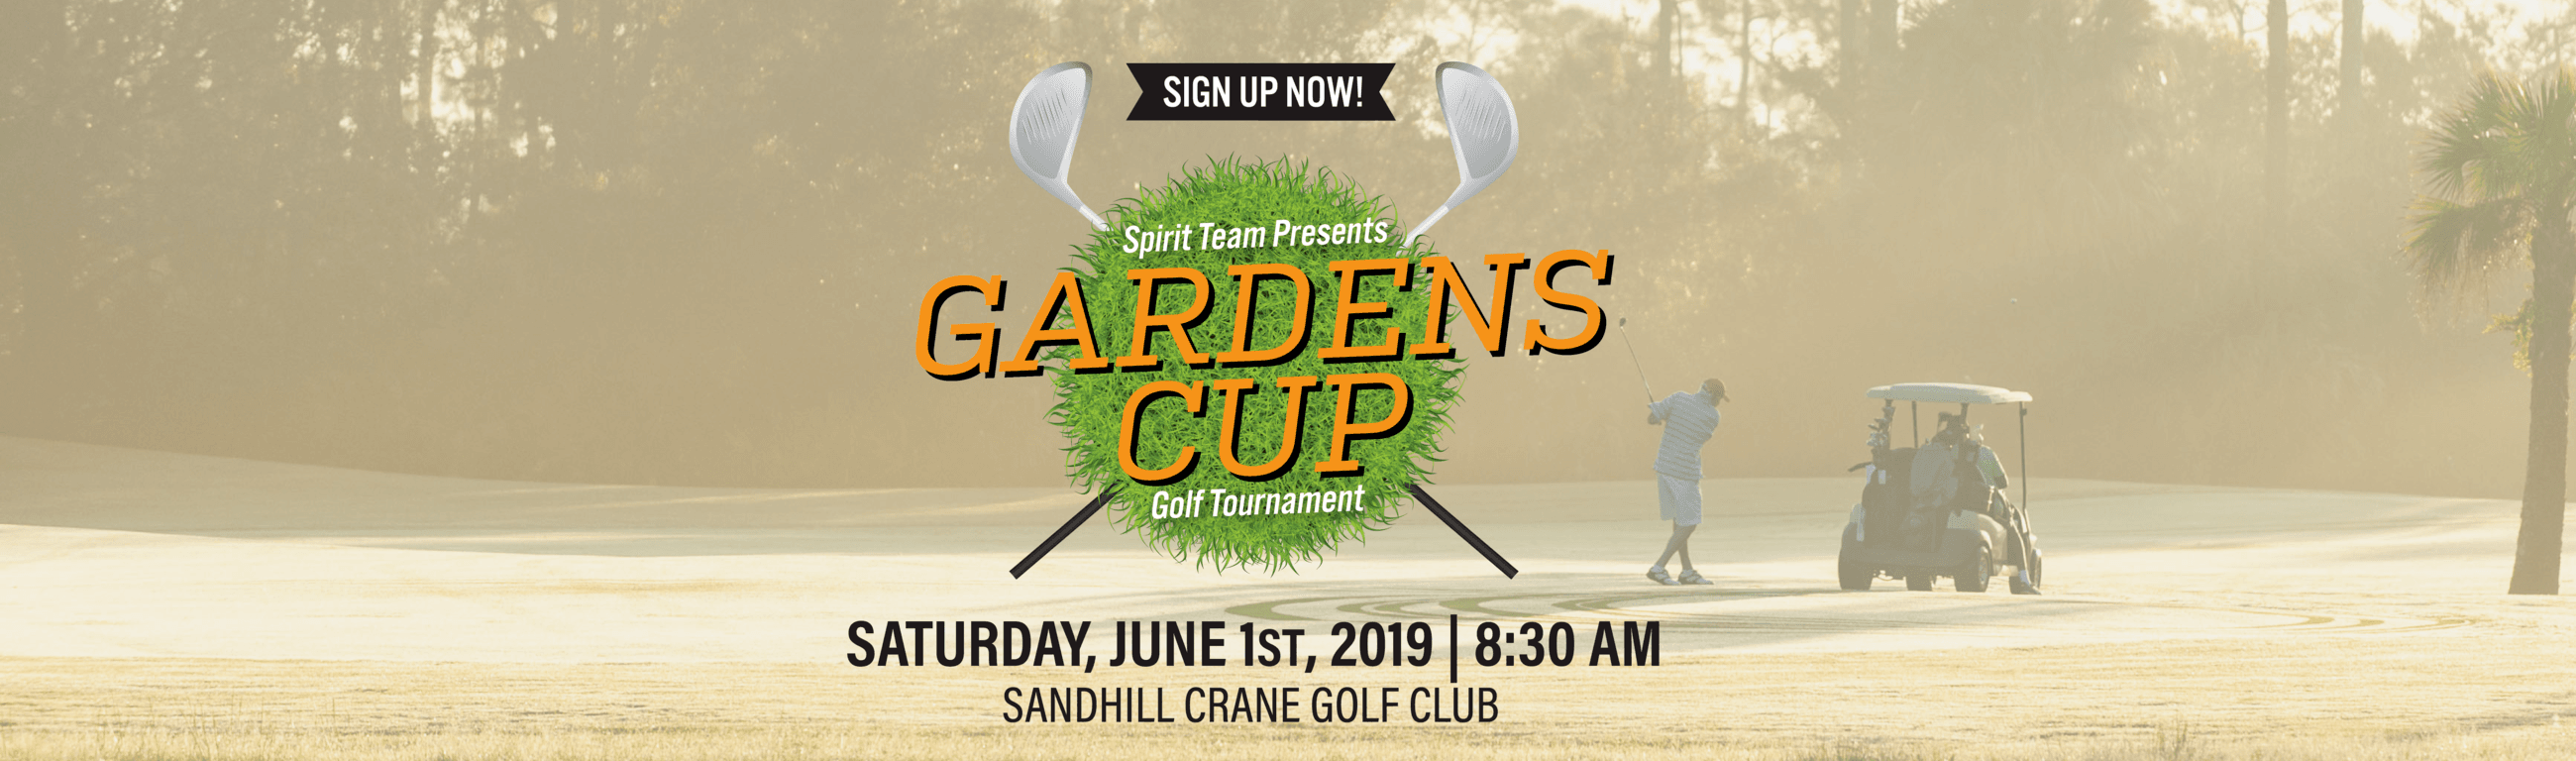 2019 Gardens Cup Golf Tournament, Saturday, June 1, 2019 at 8:30 a.m.